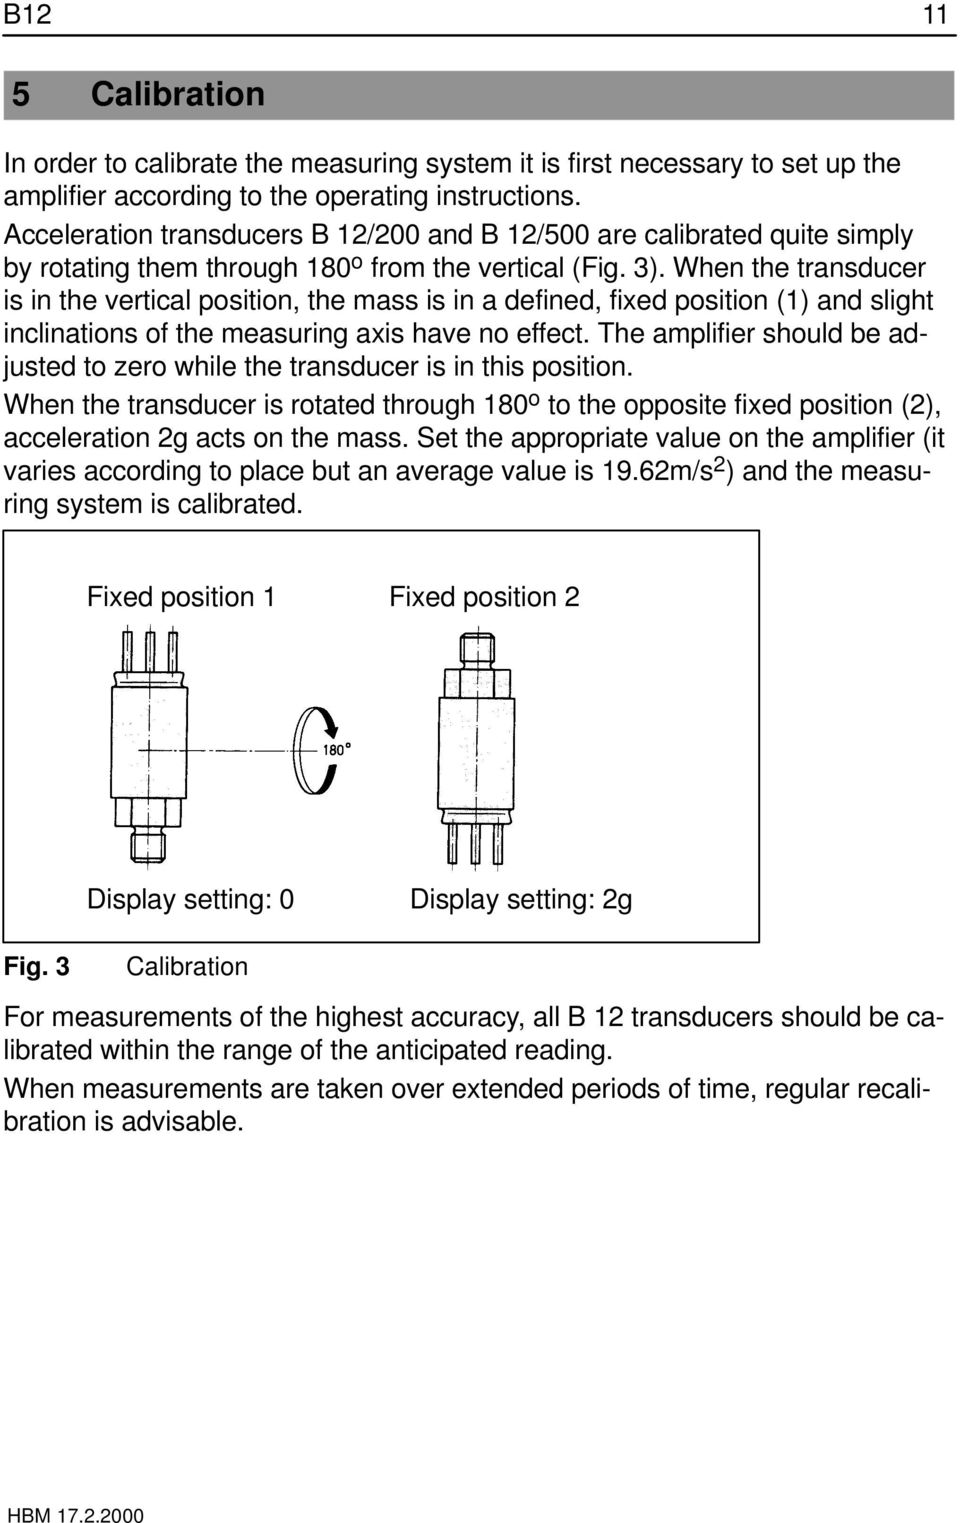 When the transducer is in the vertical position, the mass is in a defined, fixed position (1) and slight inclinations of the measuring axis have no effect.